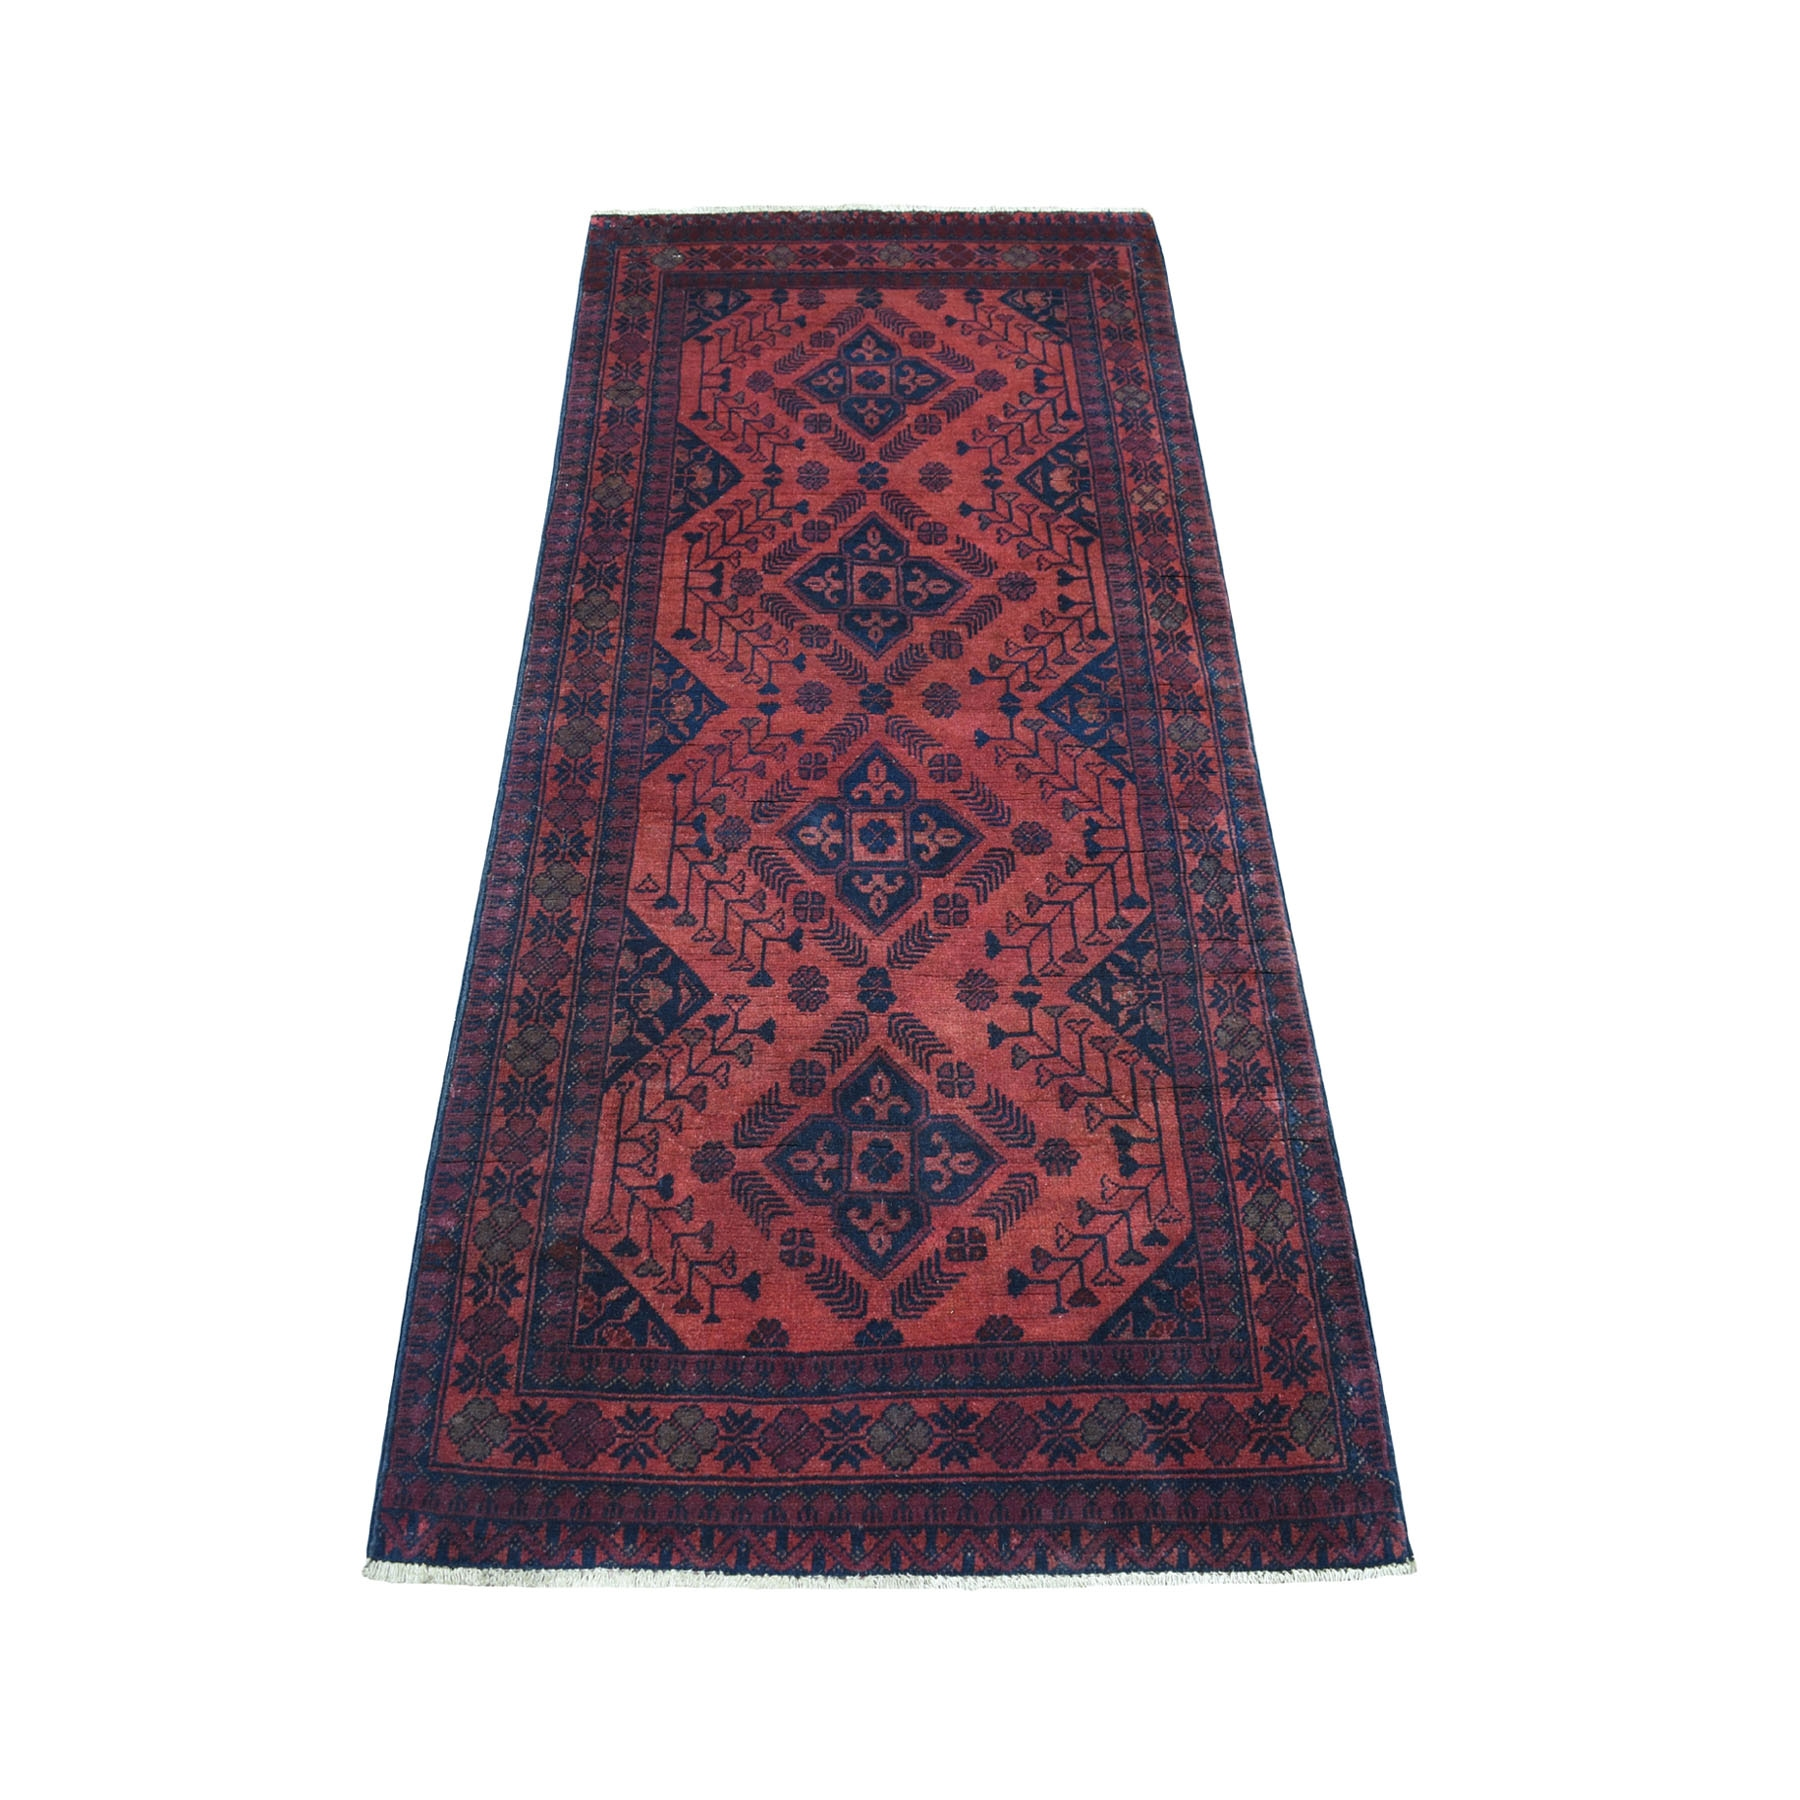 "2'7""X6'1"" Deep And Saturated Red Geometric Afghan Andkhoy Runner Pure Wool Hand Knotted Oriental Rug moaec908"